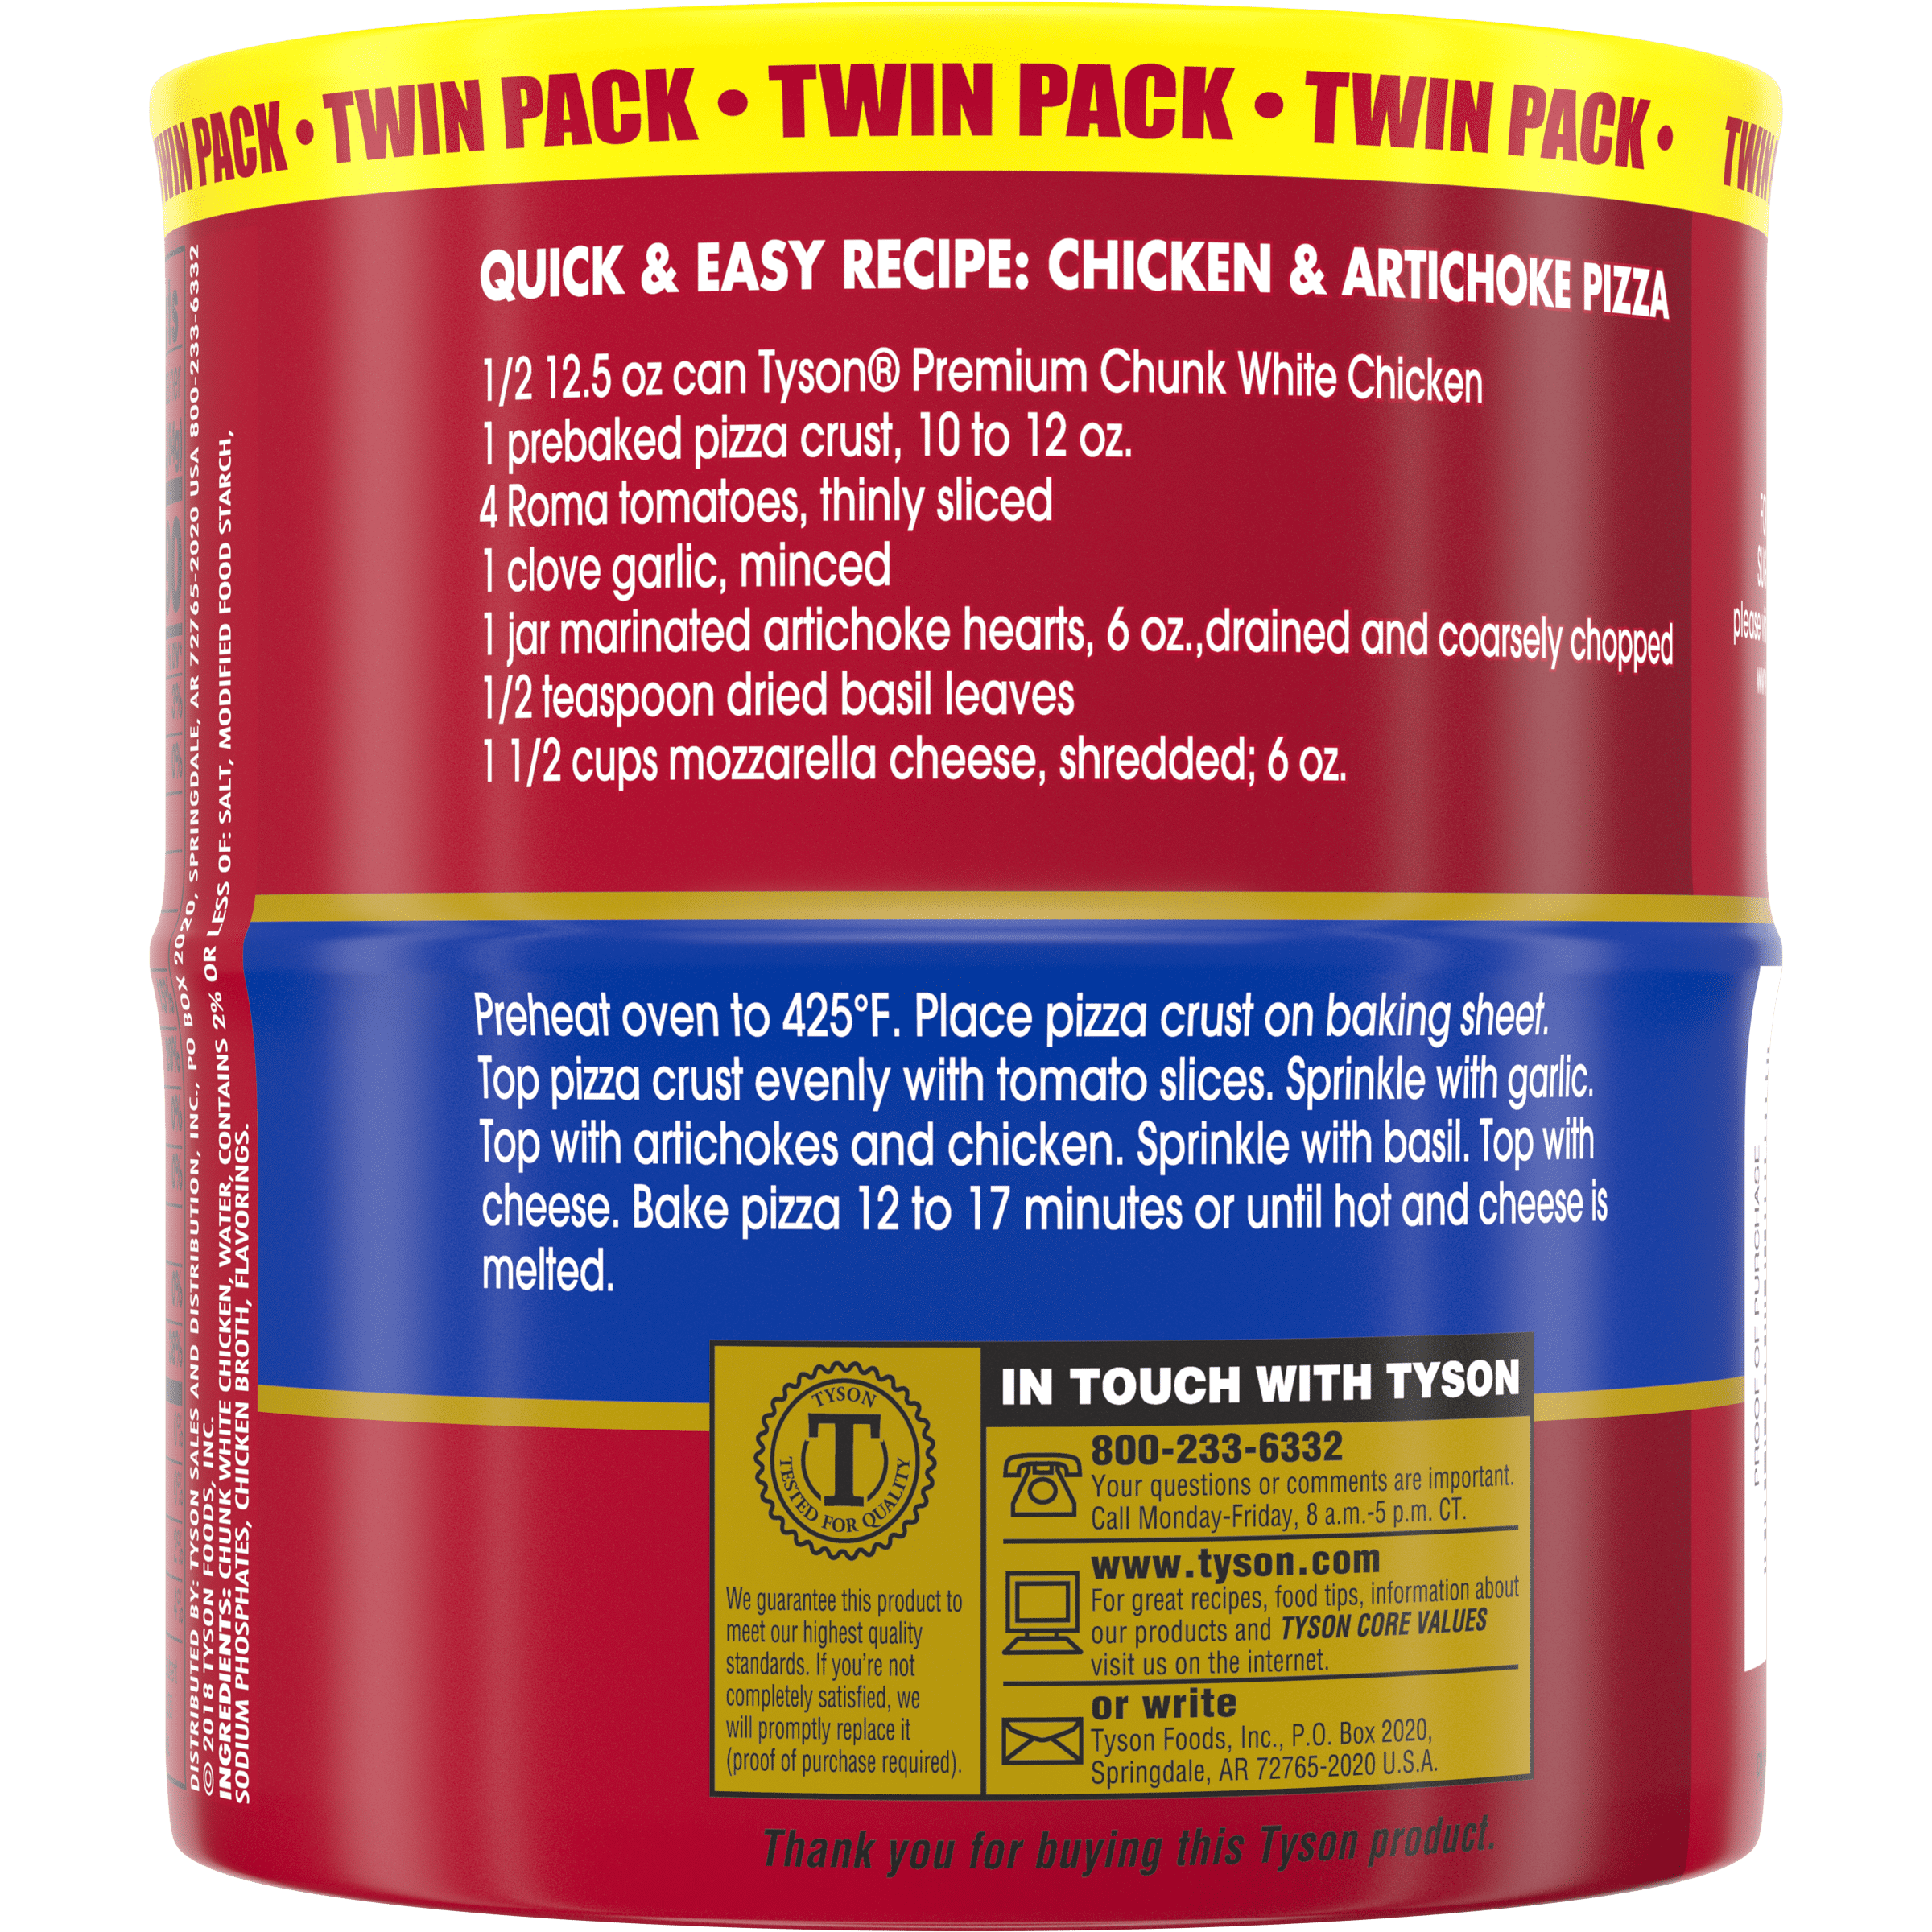 Tyson Premium Chunk White Chicken Breast 12 5 Oz Twin Pack Walmart Com Walmart Com